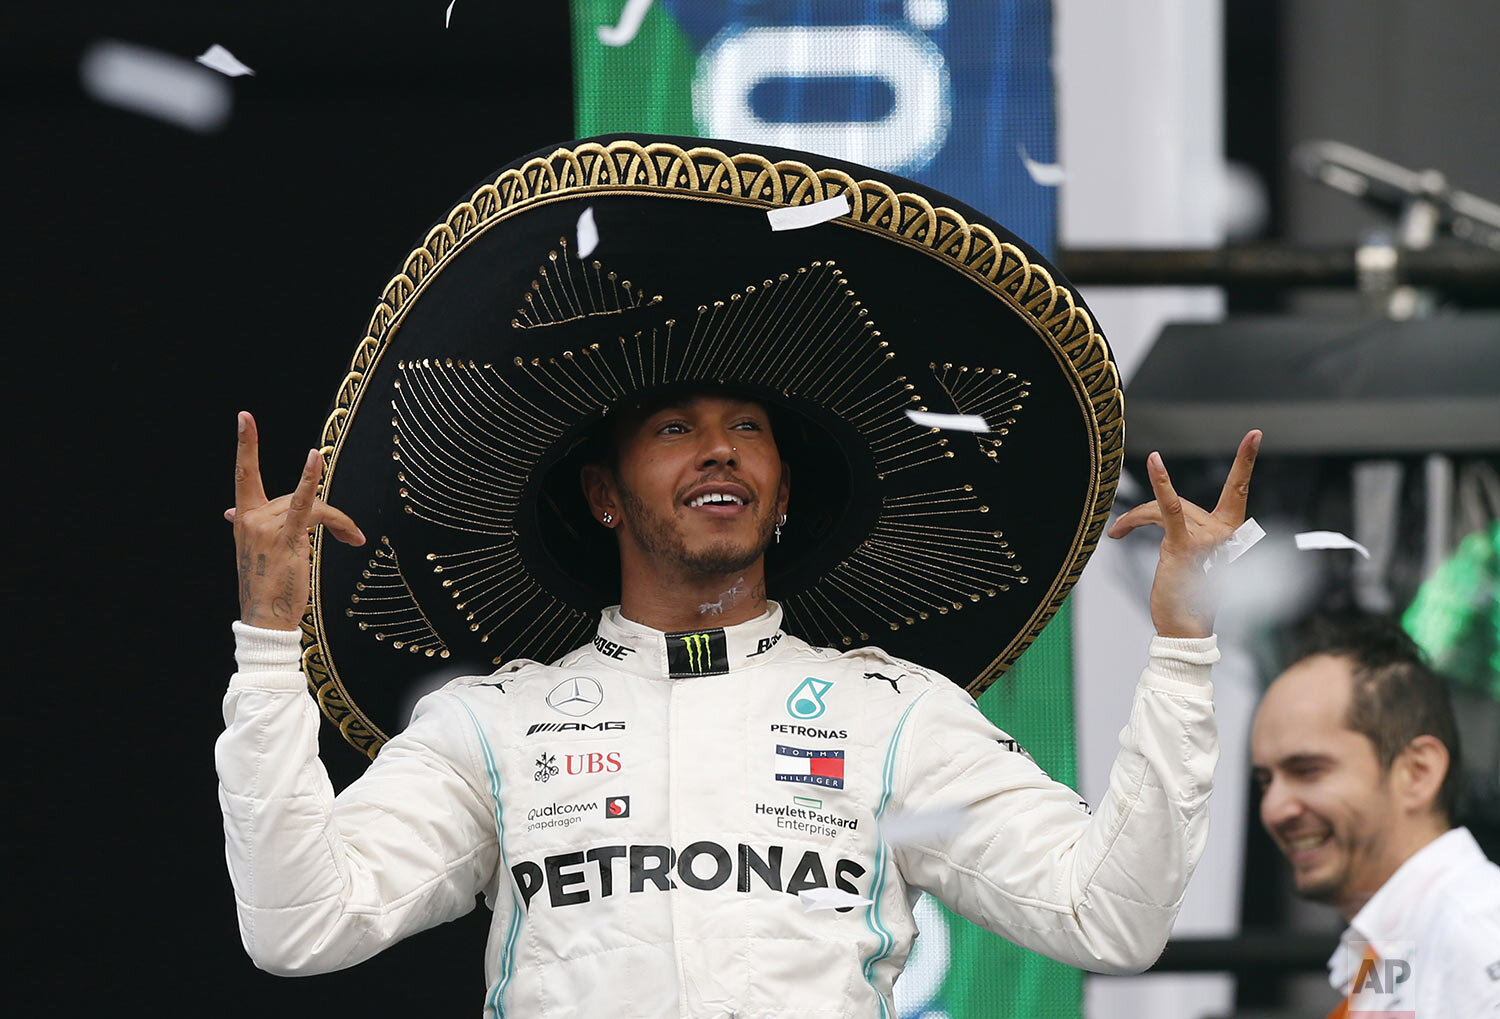 Mercedes driver Lewis Hamilton, of Britain, dons a Mexican Charro hat as he celebrates his victory in the Formula One Mexico Grand Prix auto race at the Hermanos Rodriguez racetrack in Mexico City, Sunday, Oct. 27, 2019. (AP Photo/Rebecca Blackwell)